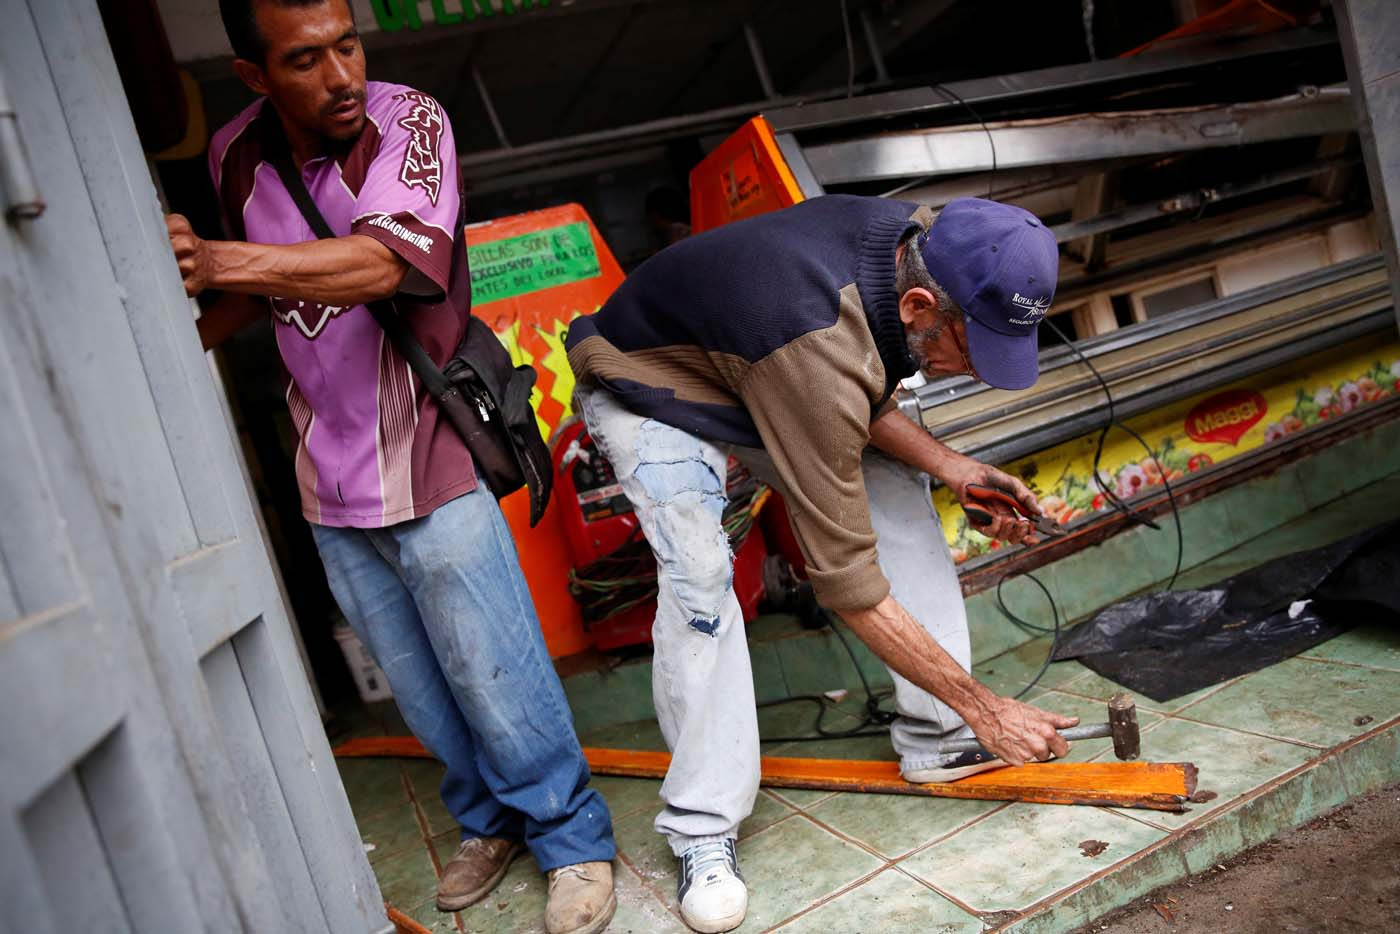 Workers try to repair the broken doors of a butcher's stall after it was looted in Caracas, Venezuela April 21, 2017. REUTERS/Carlos Garcia Rawlins